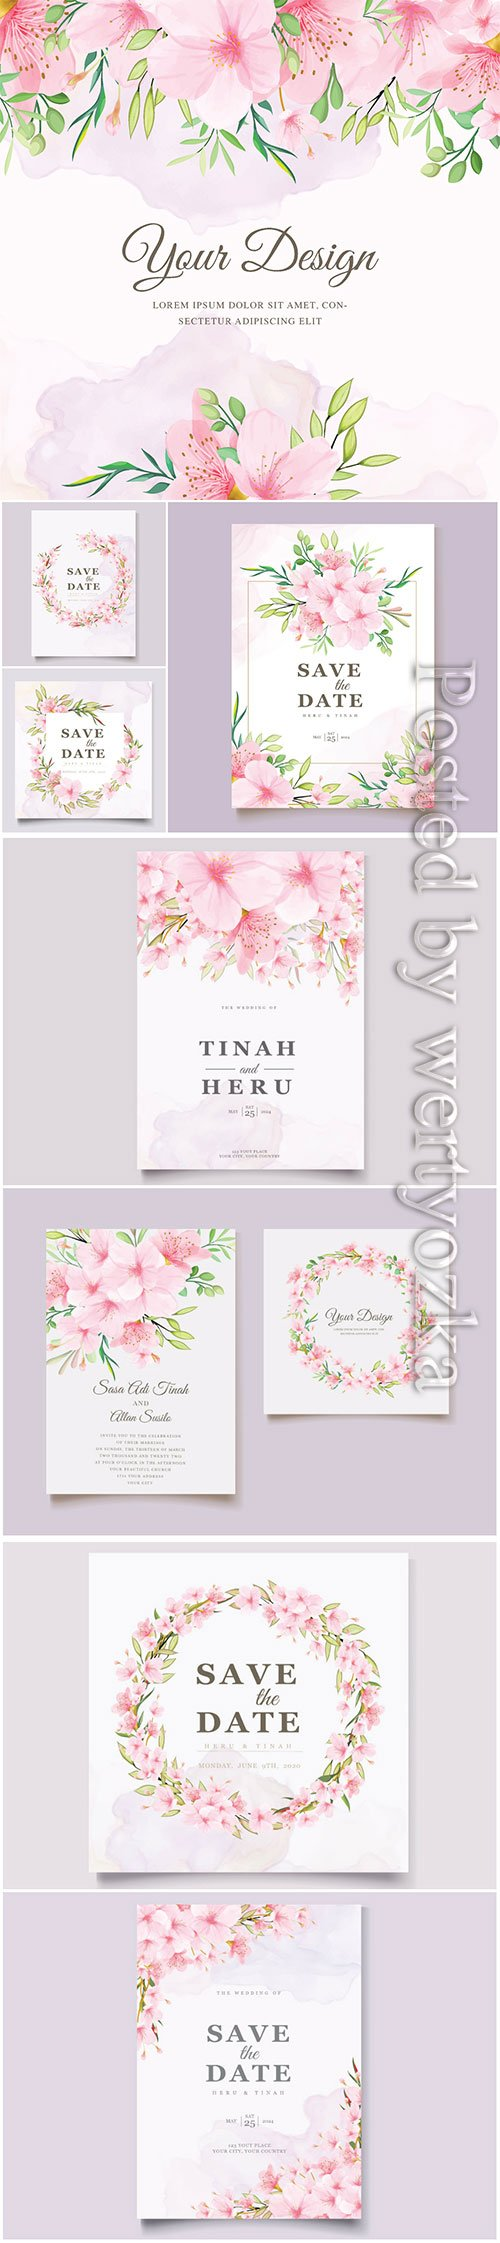 Wedding invitation cards with pink flowers in vector